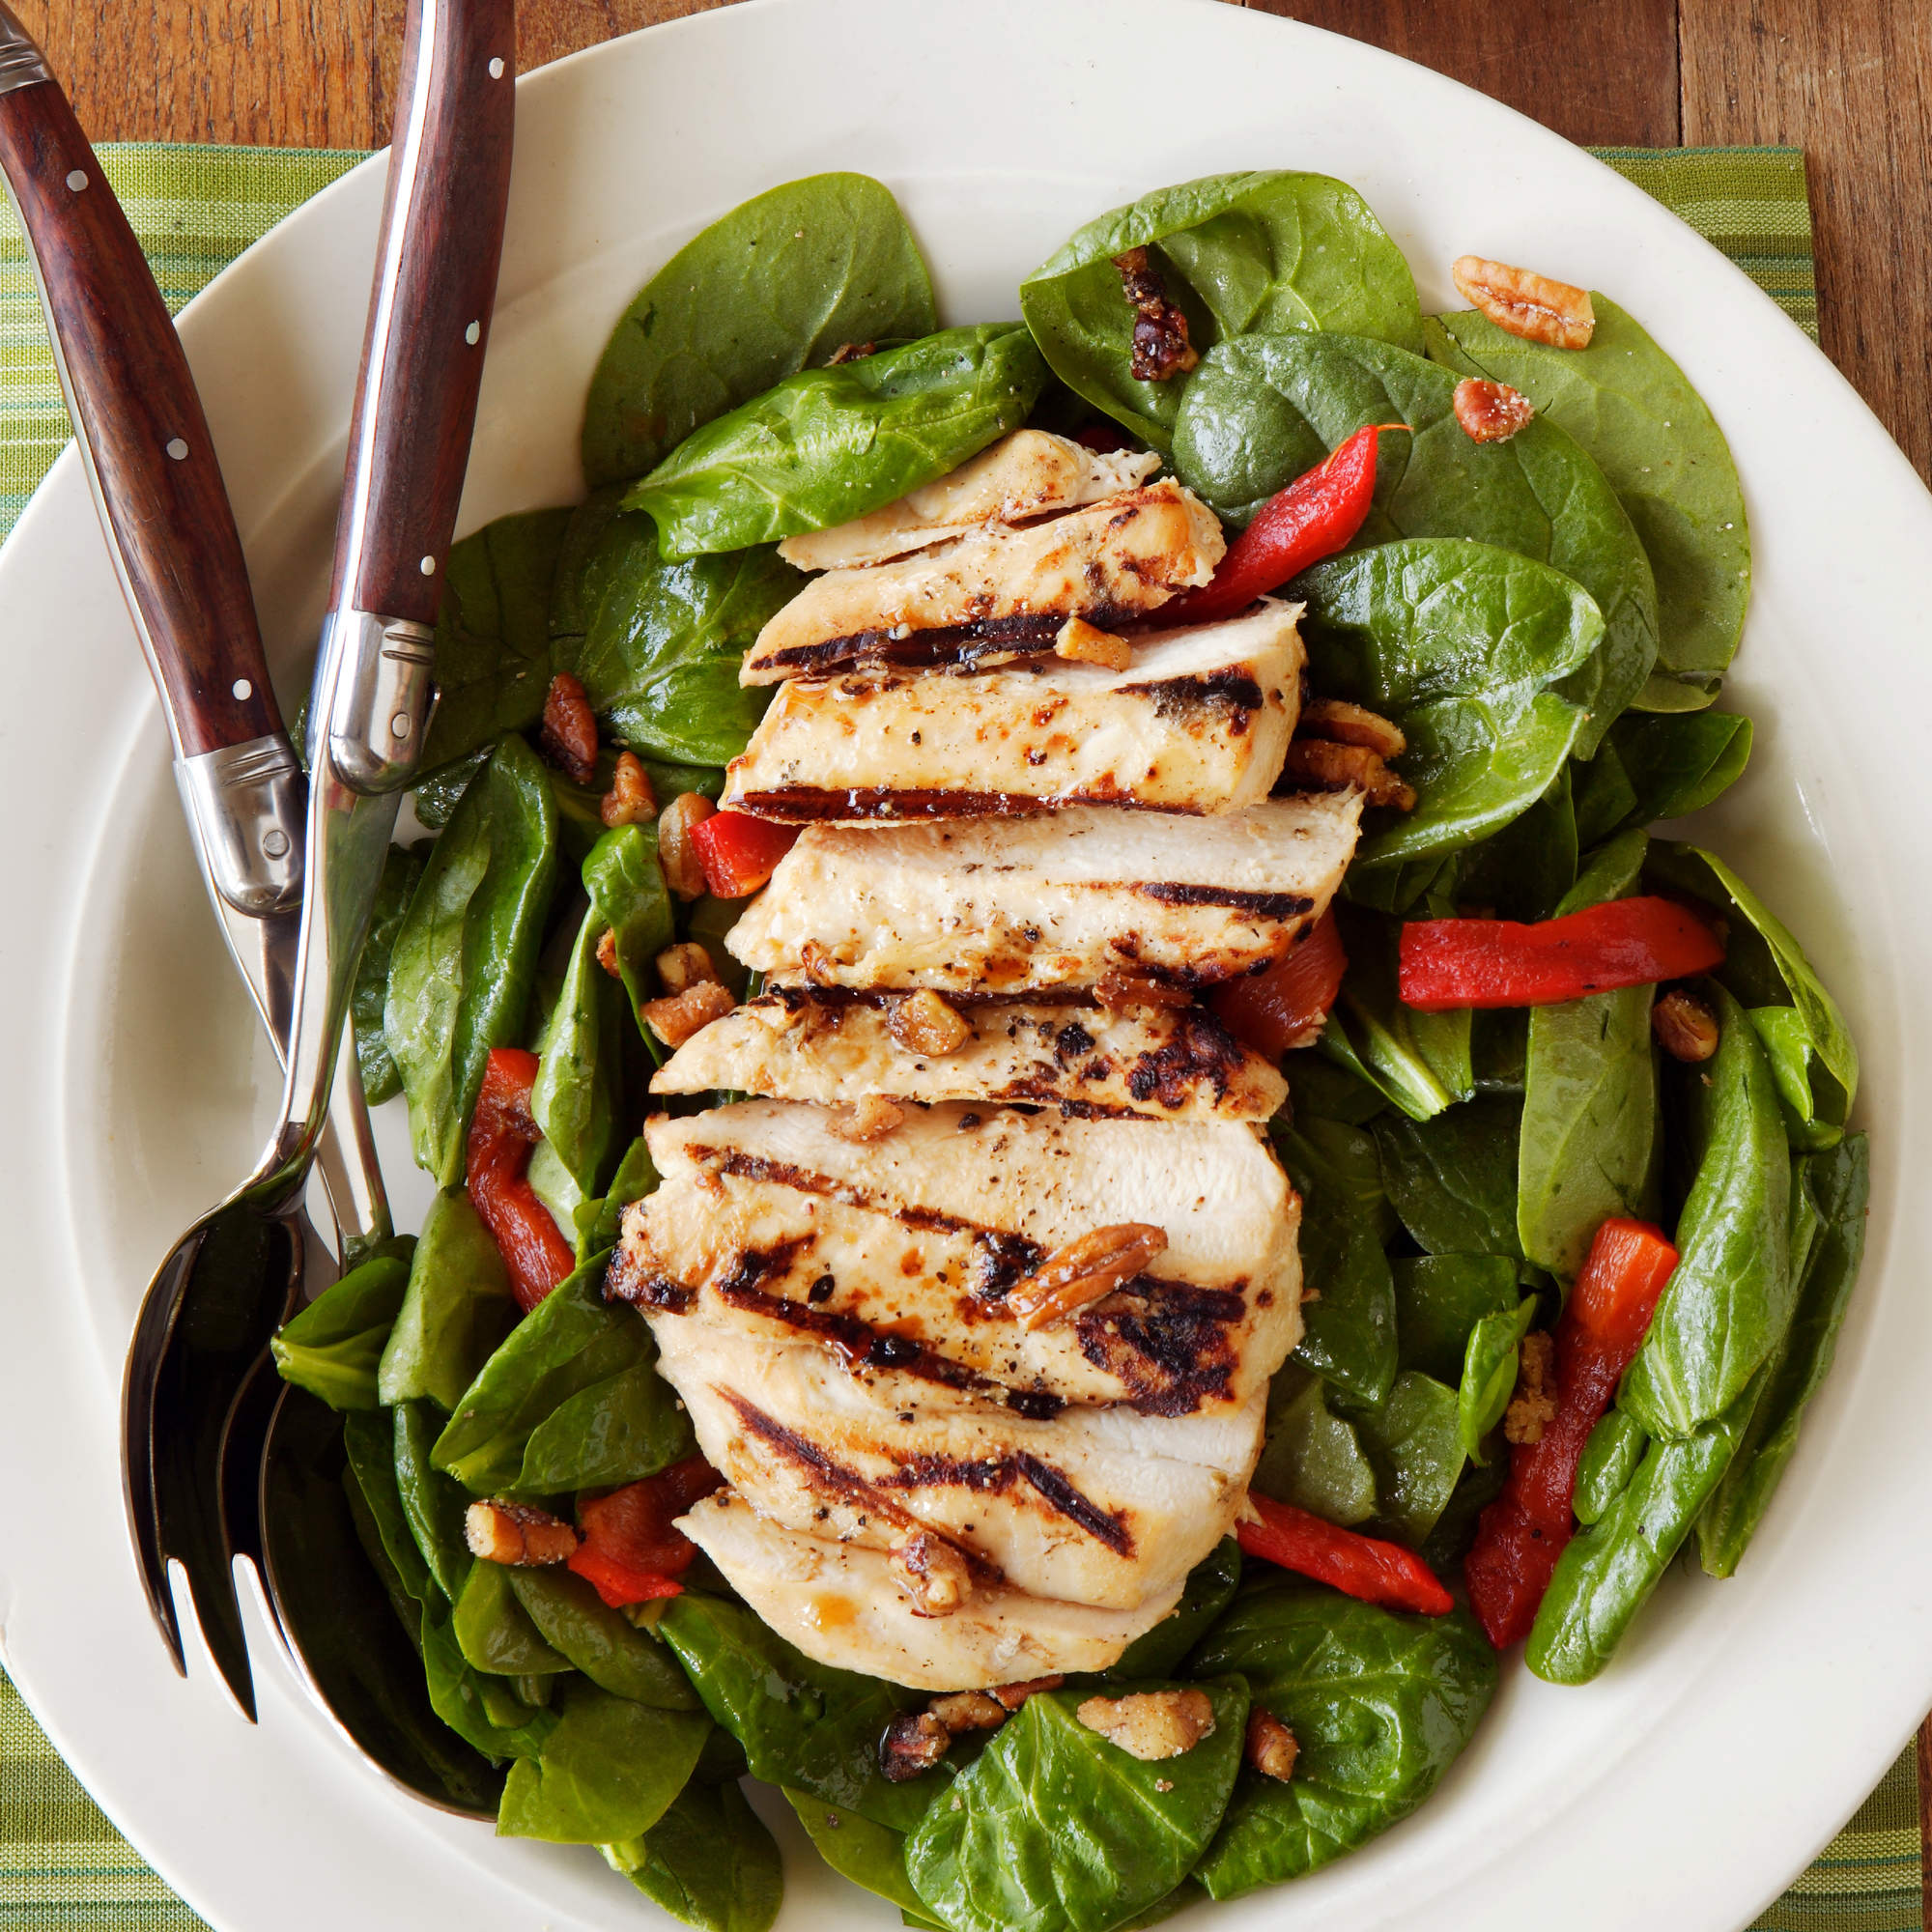 Healthy Chicken Recipes: Healthy Grilled Chicken Recipes